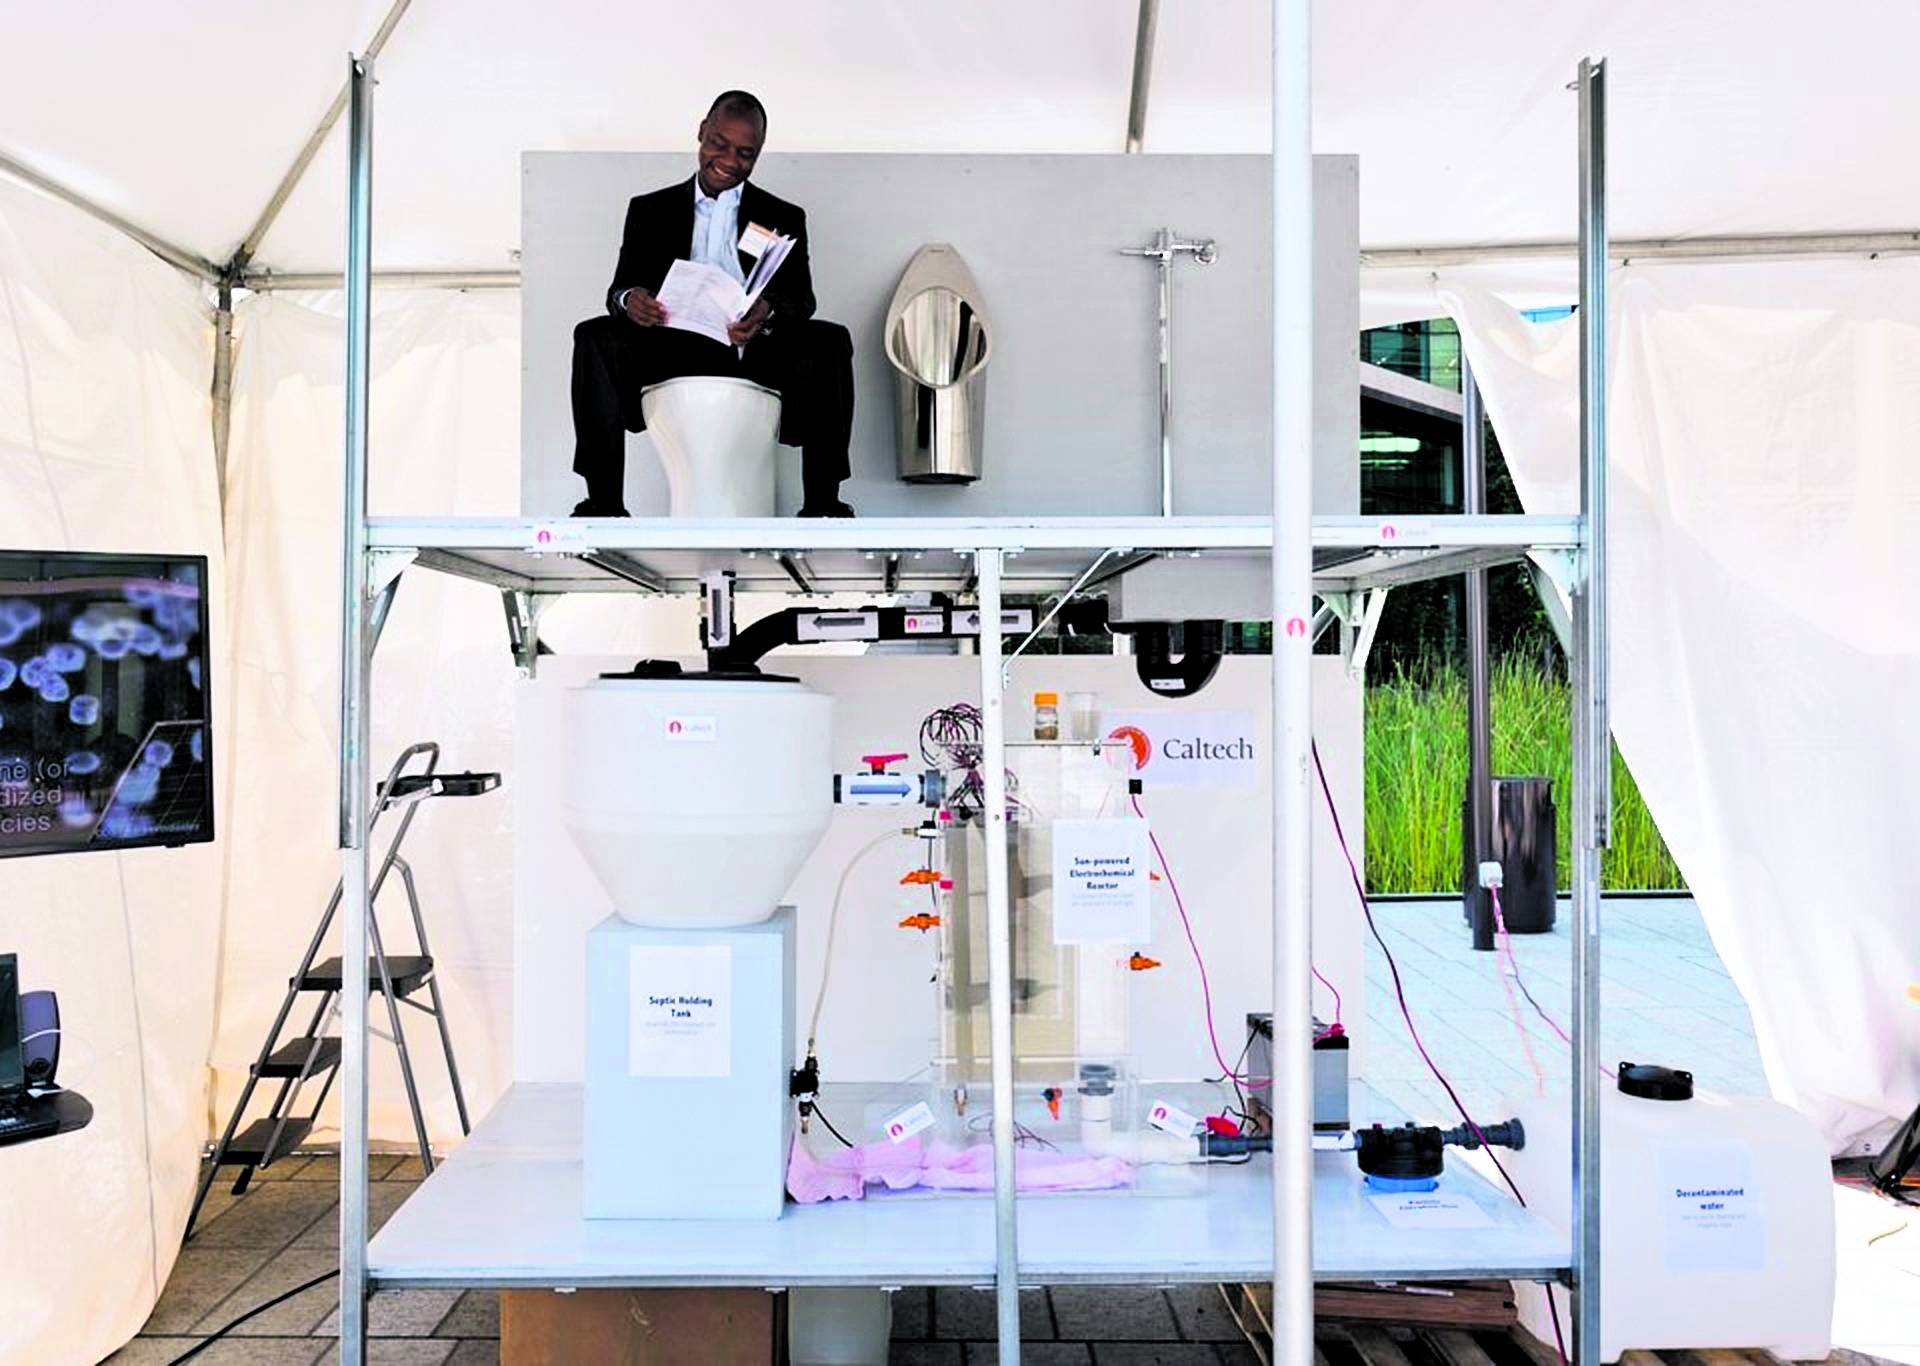 Doulaye Kone sits on the toilet at the winning prototype, a system designed by researchers from California Institute of Technology (exhibit 30) at the Reinvent the Toilet Fair in Seattle on August 12, 2012. Their model is a solar-powered toilet that gener